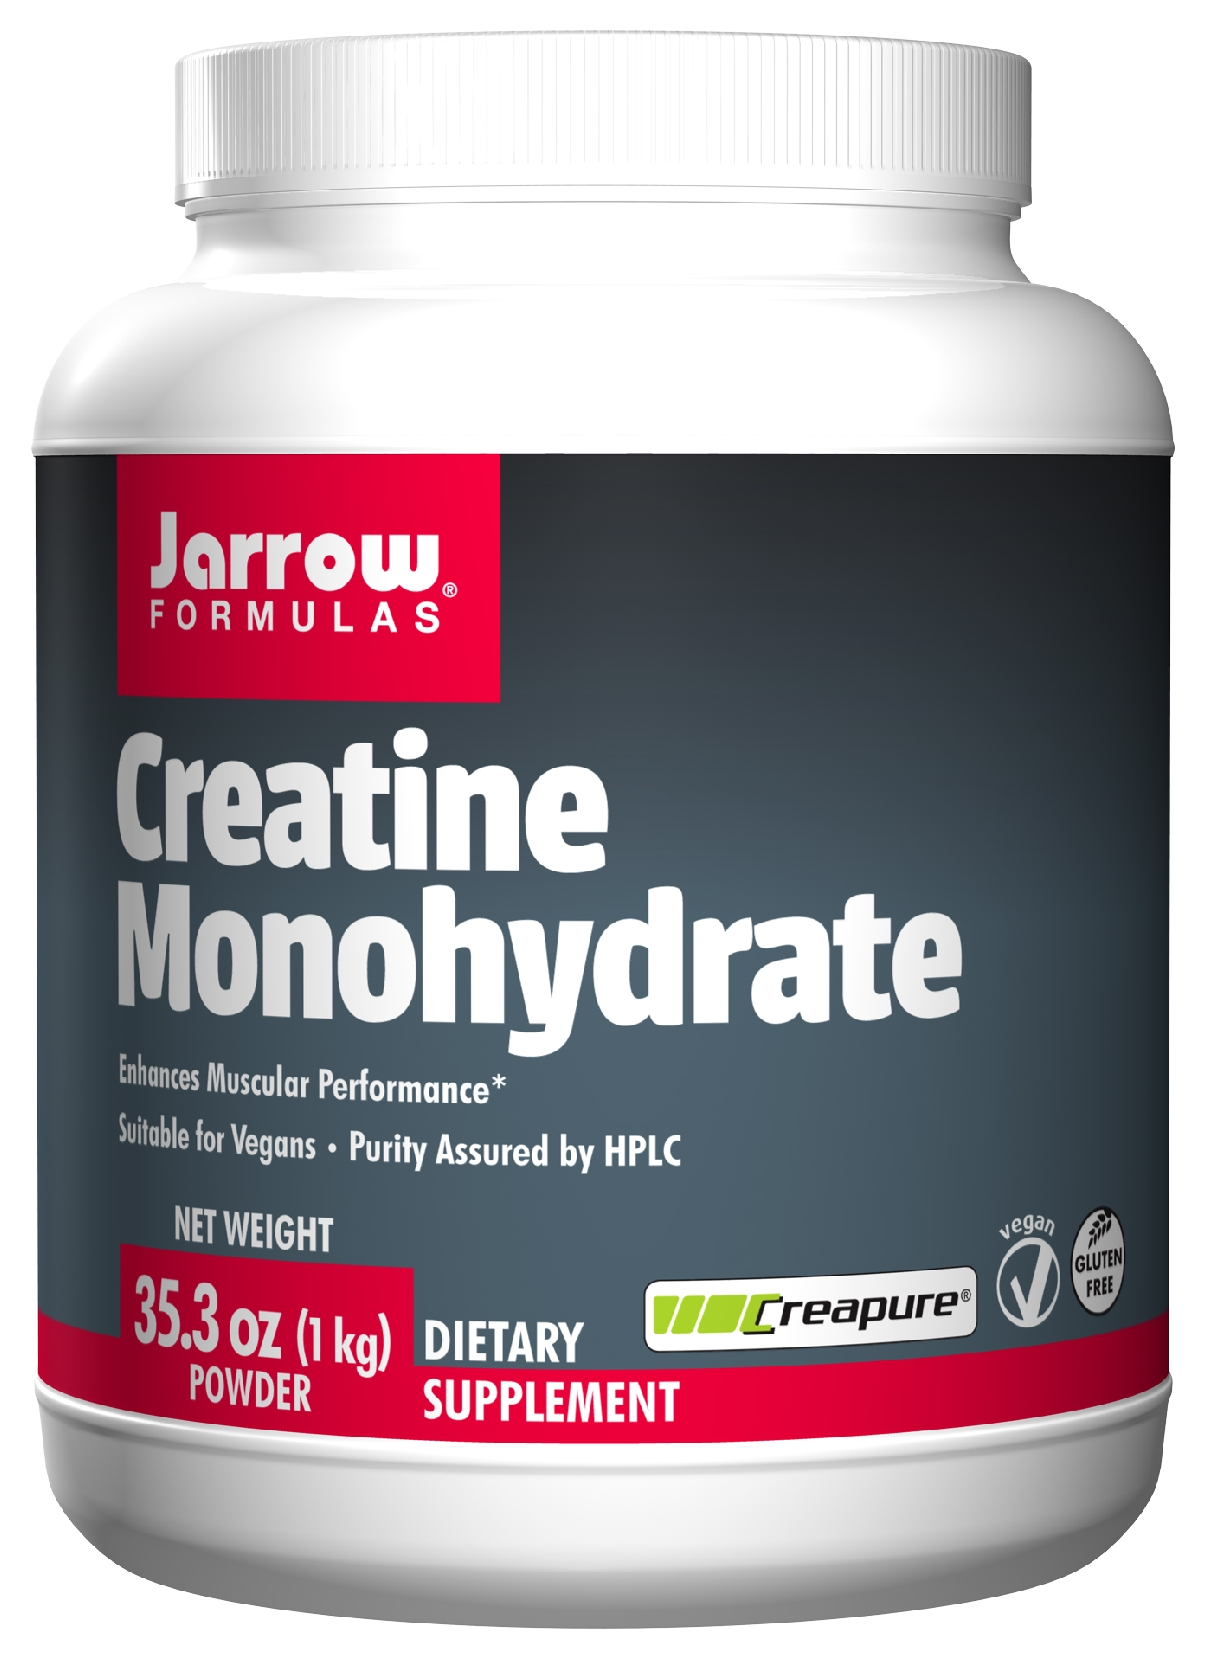 Creatine Monohydrate Kilo 35.3 oz (1 kg) by Jarrow Formulas